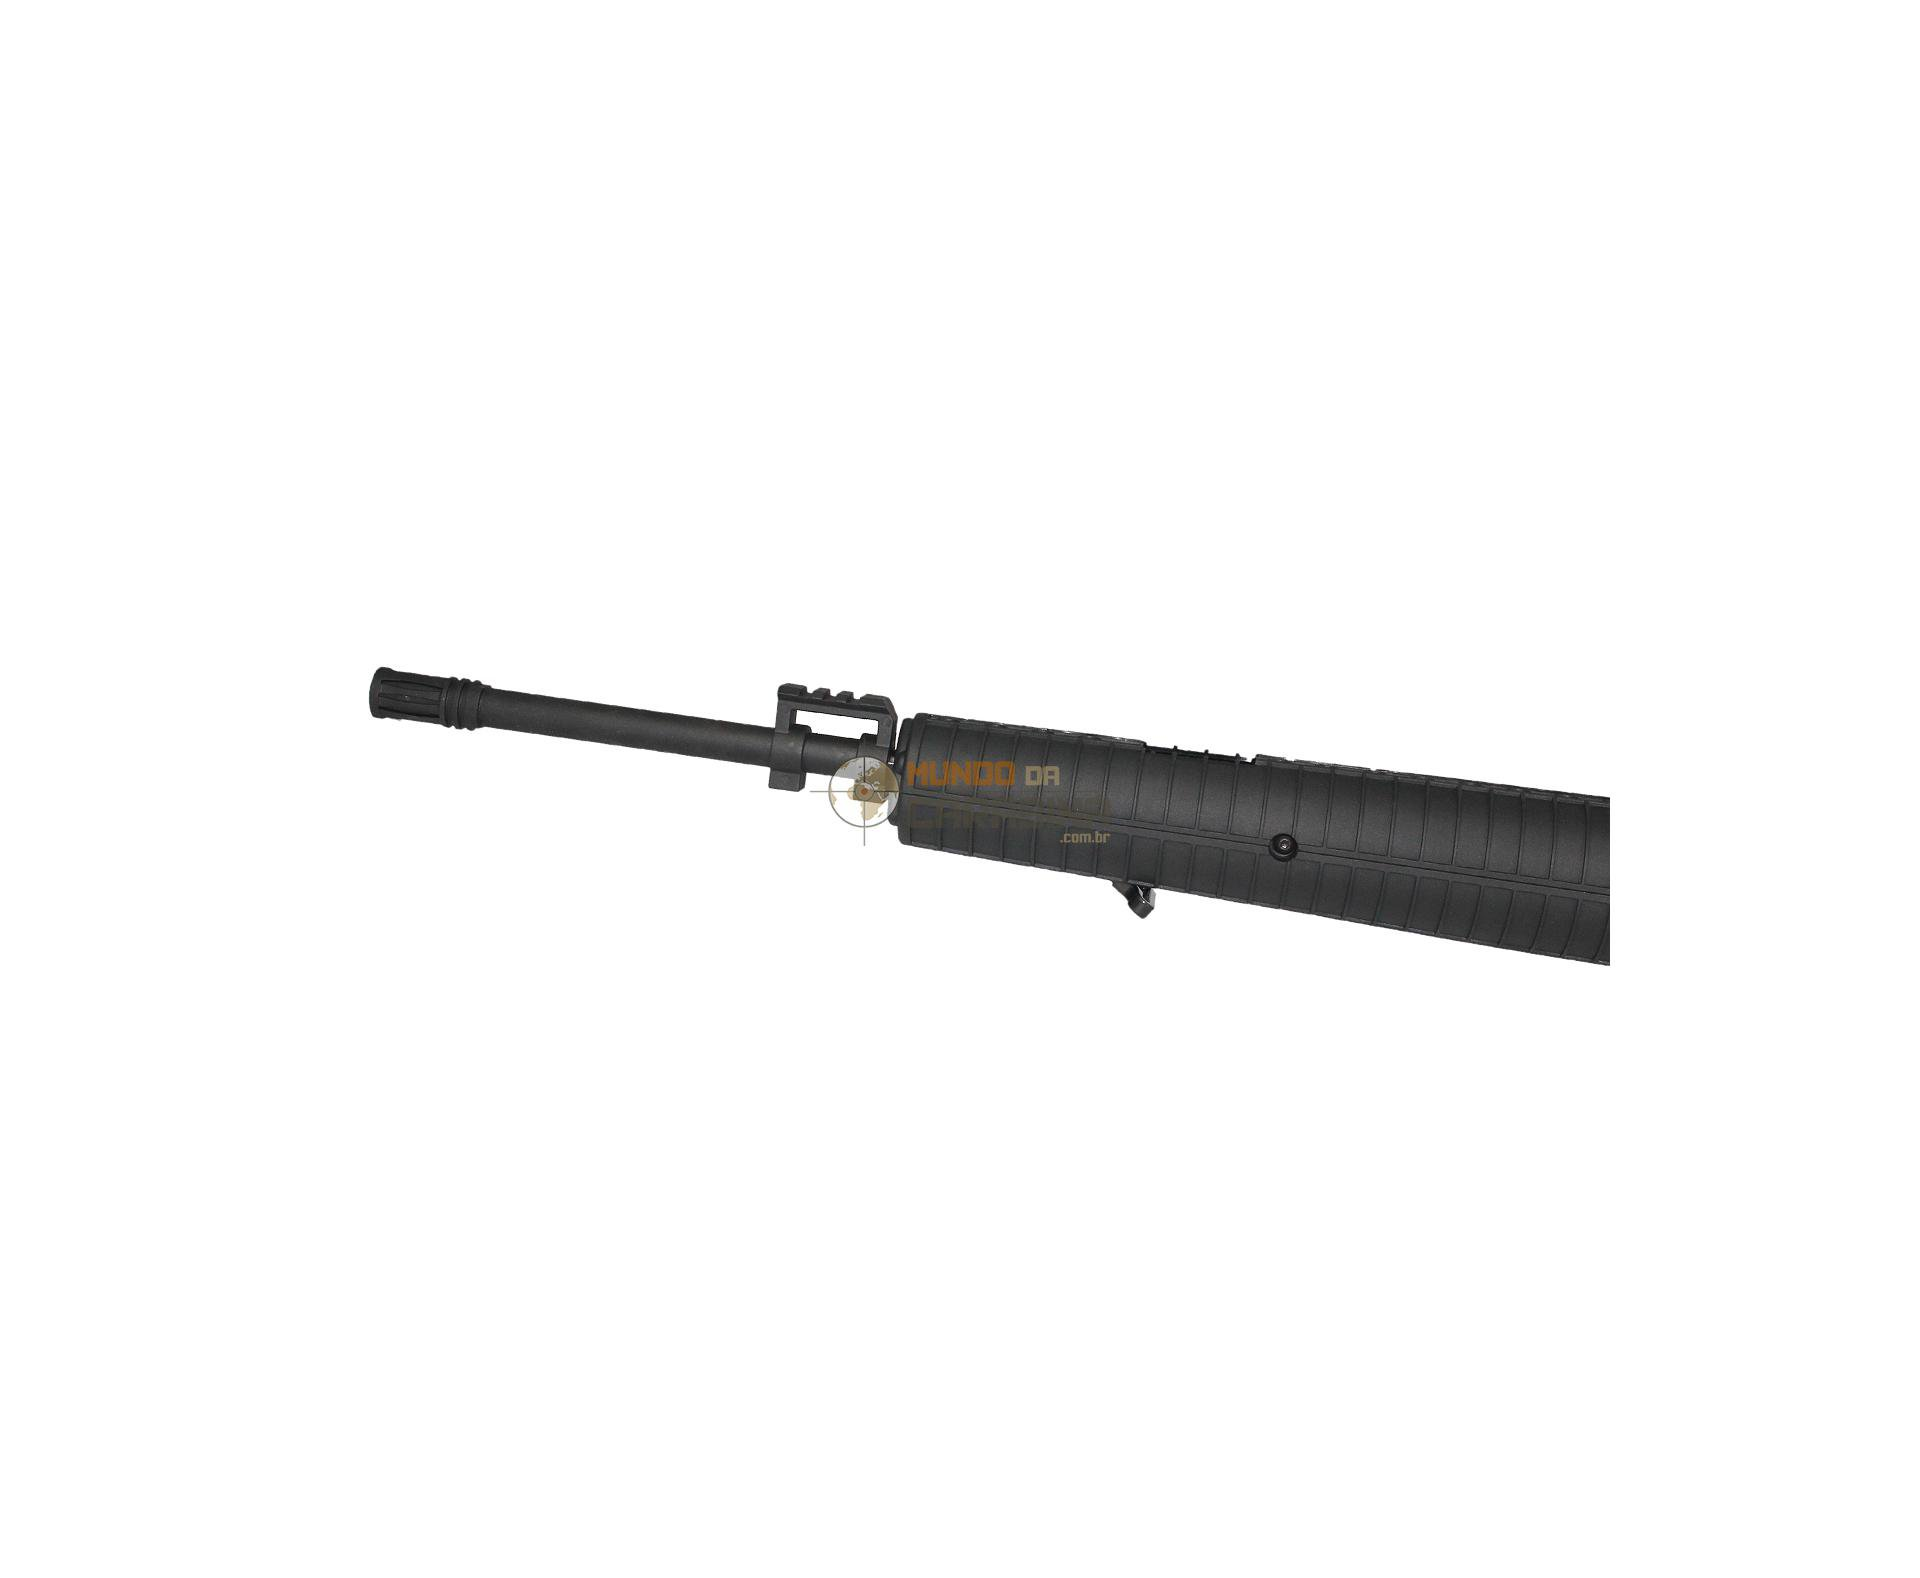 Carabina De Pressão Mtr77np Gas Ram Tatical Cal 4,5mm - Crosman + Luneta Center Point 4x32